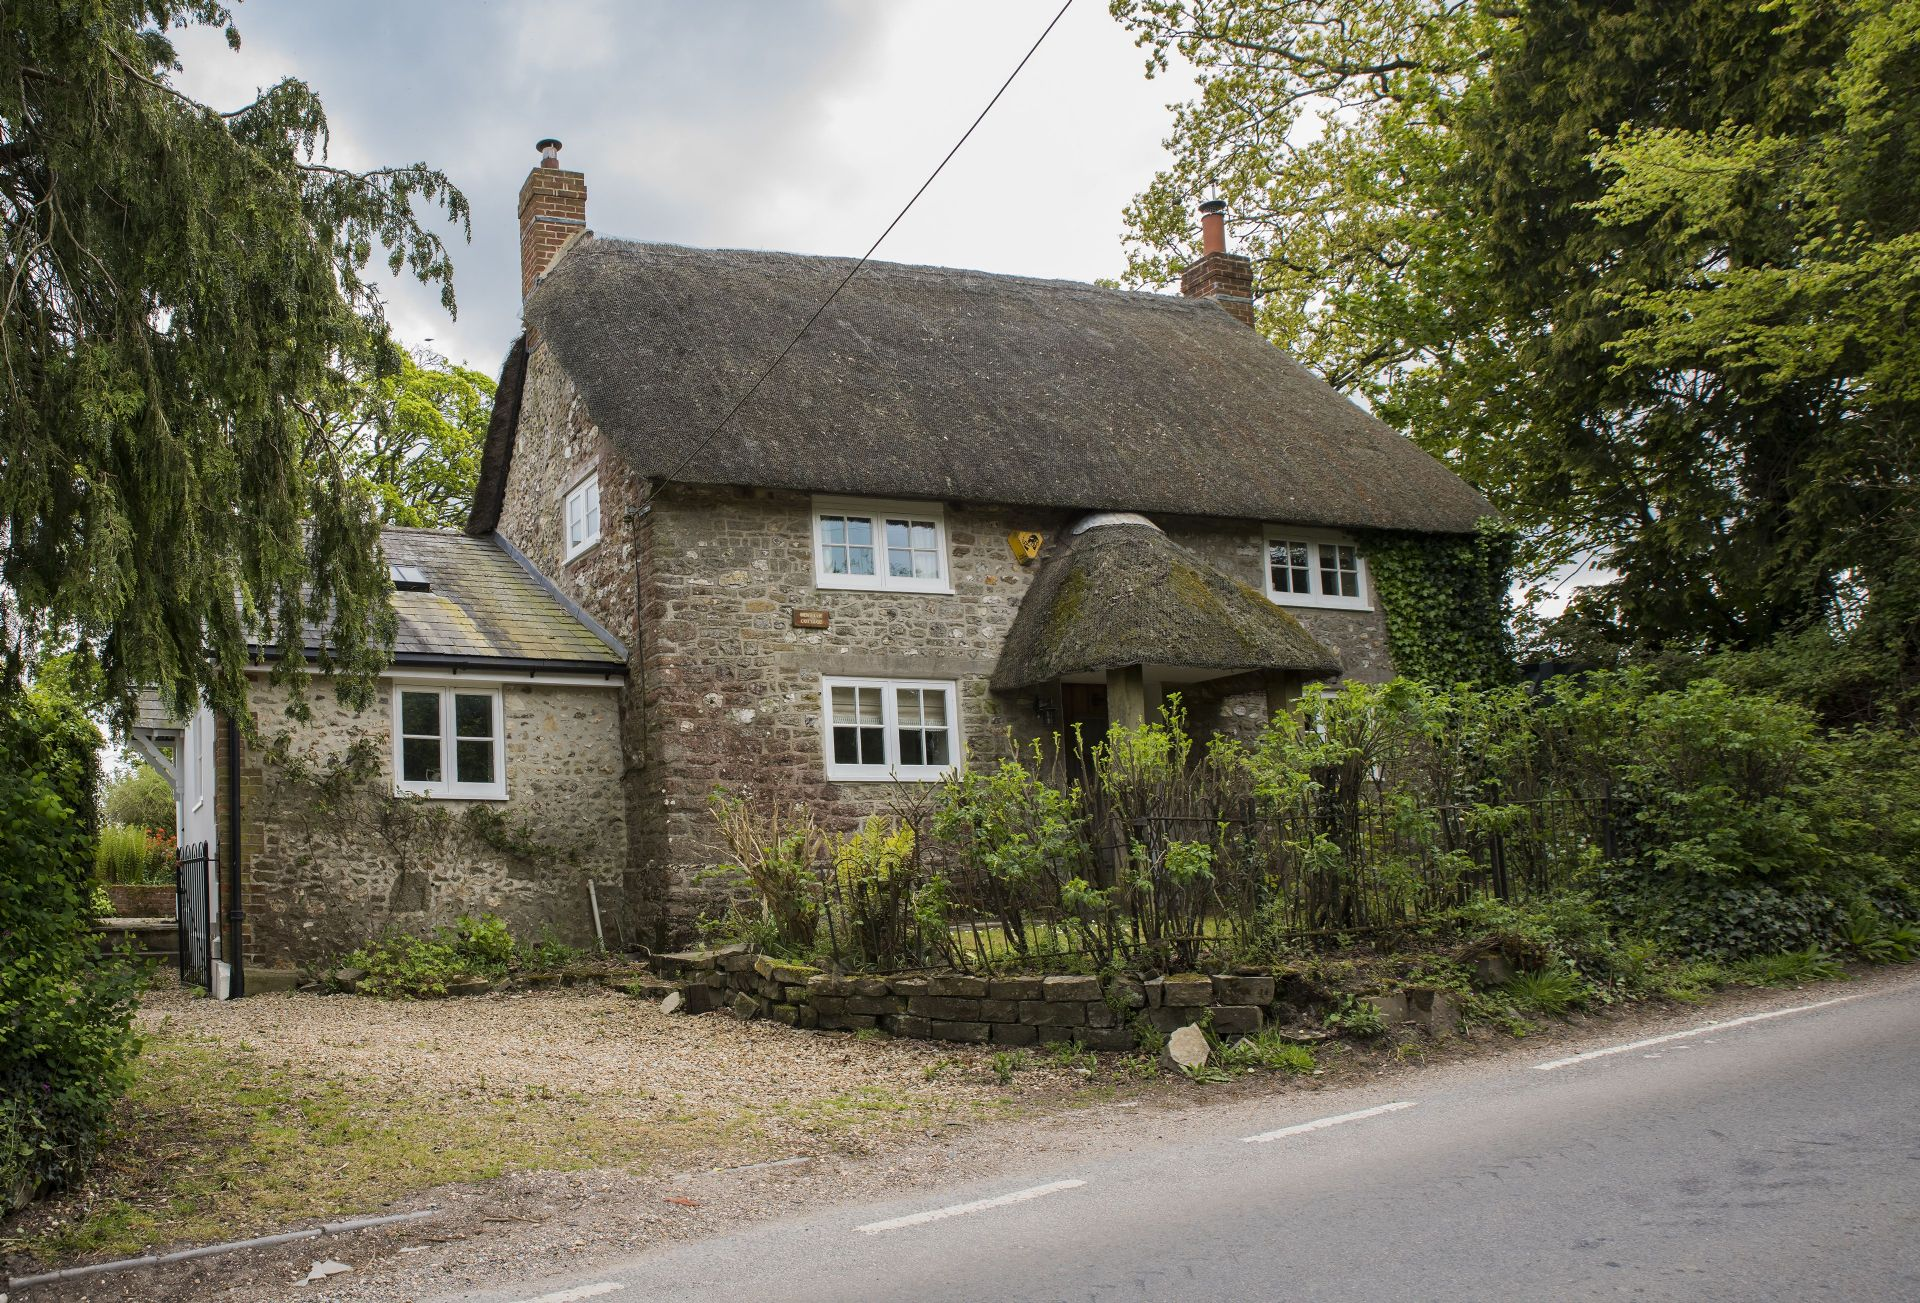 Benville Cottage is a pretty thatched cottage dating from the 17th century